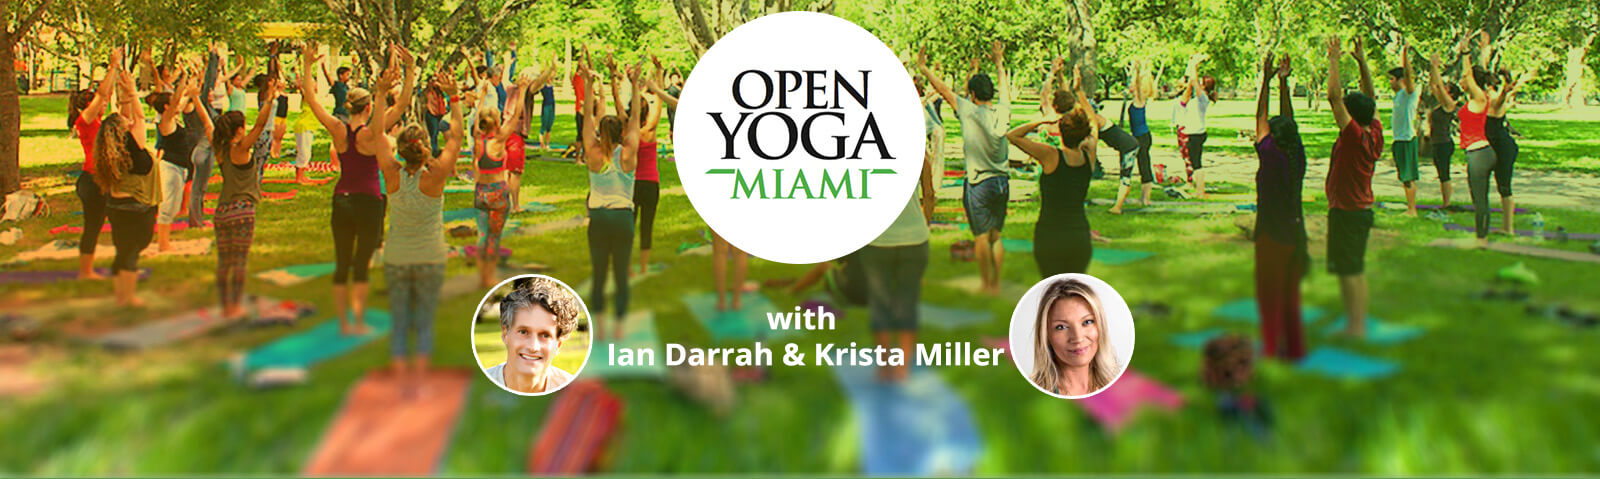 1.OPEN-YOGA-MIAMI_slider